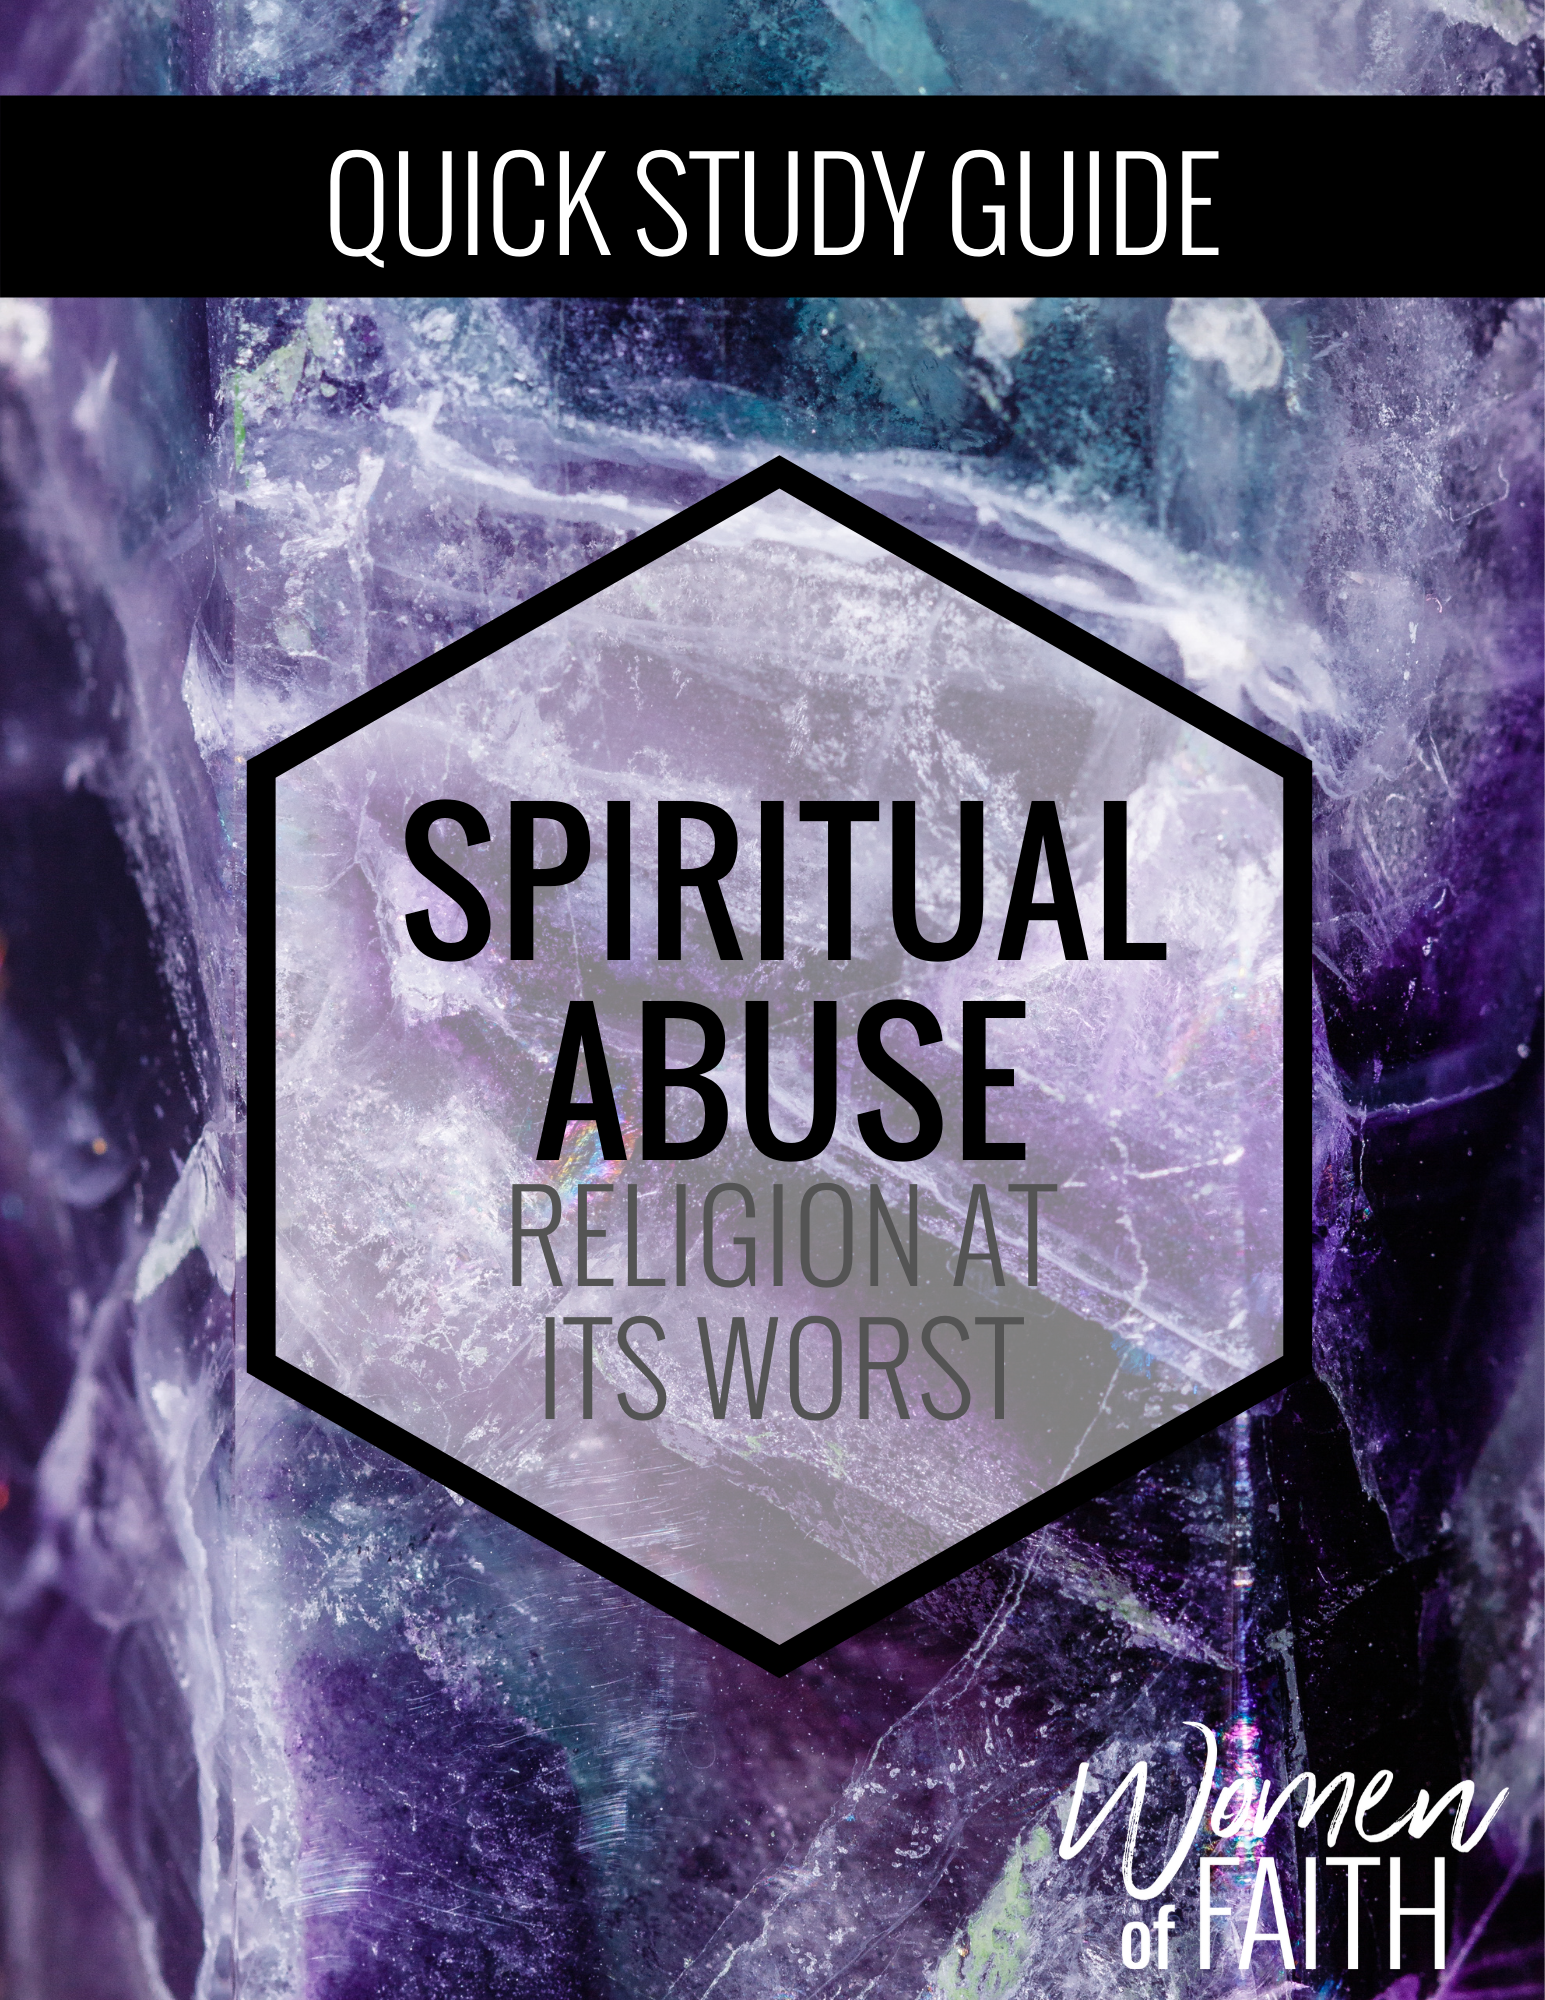 SPIRITUAL ABUSE - QUICK STUDY GUIDE